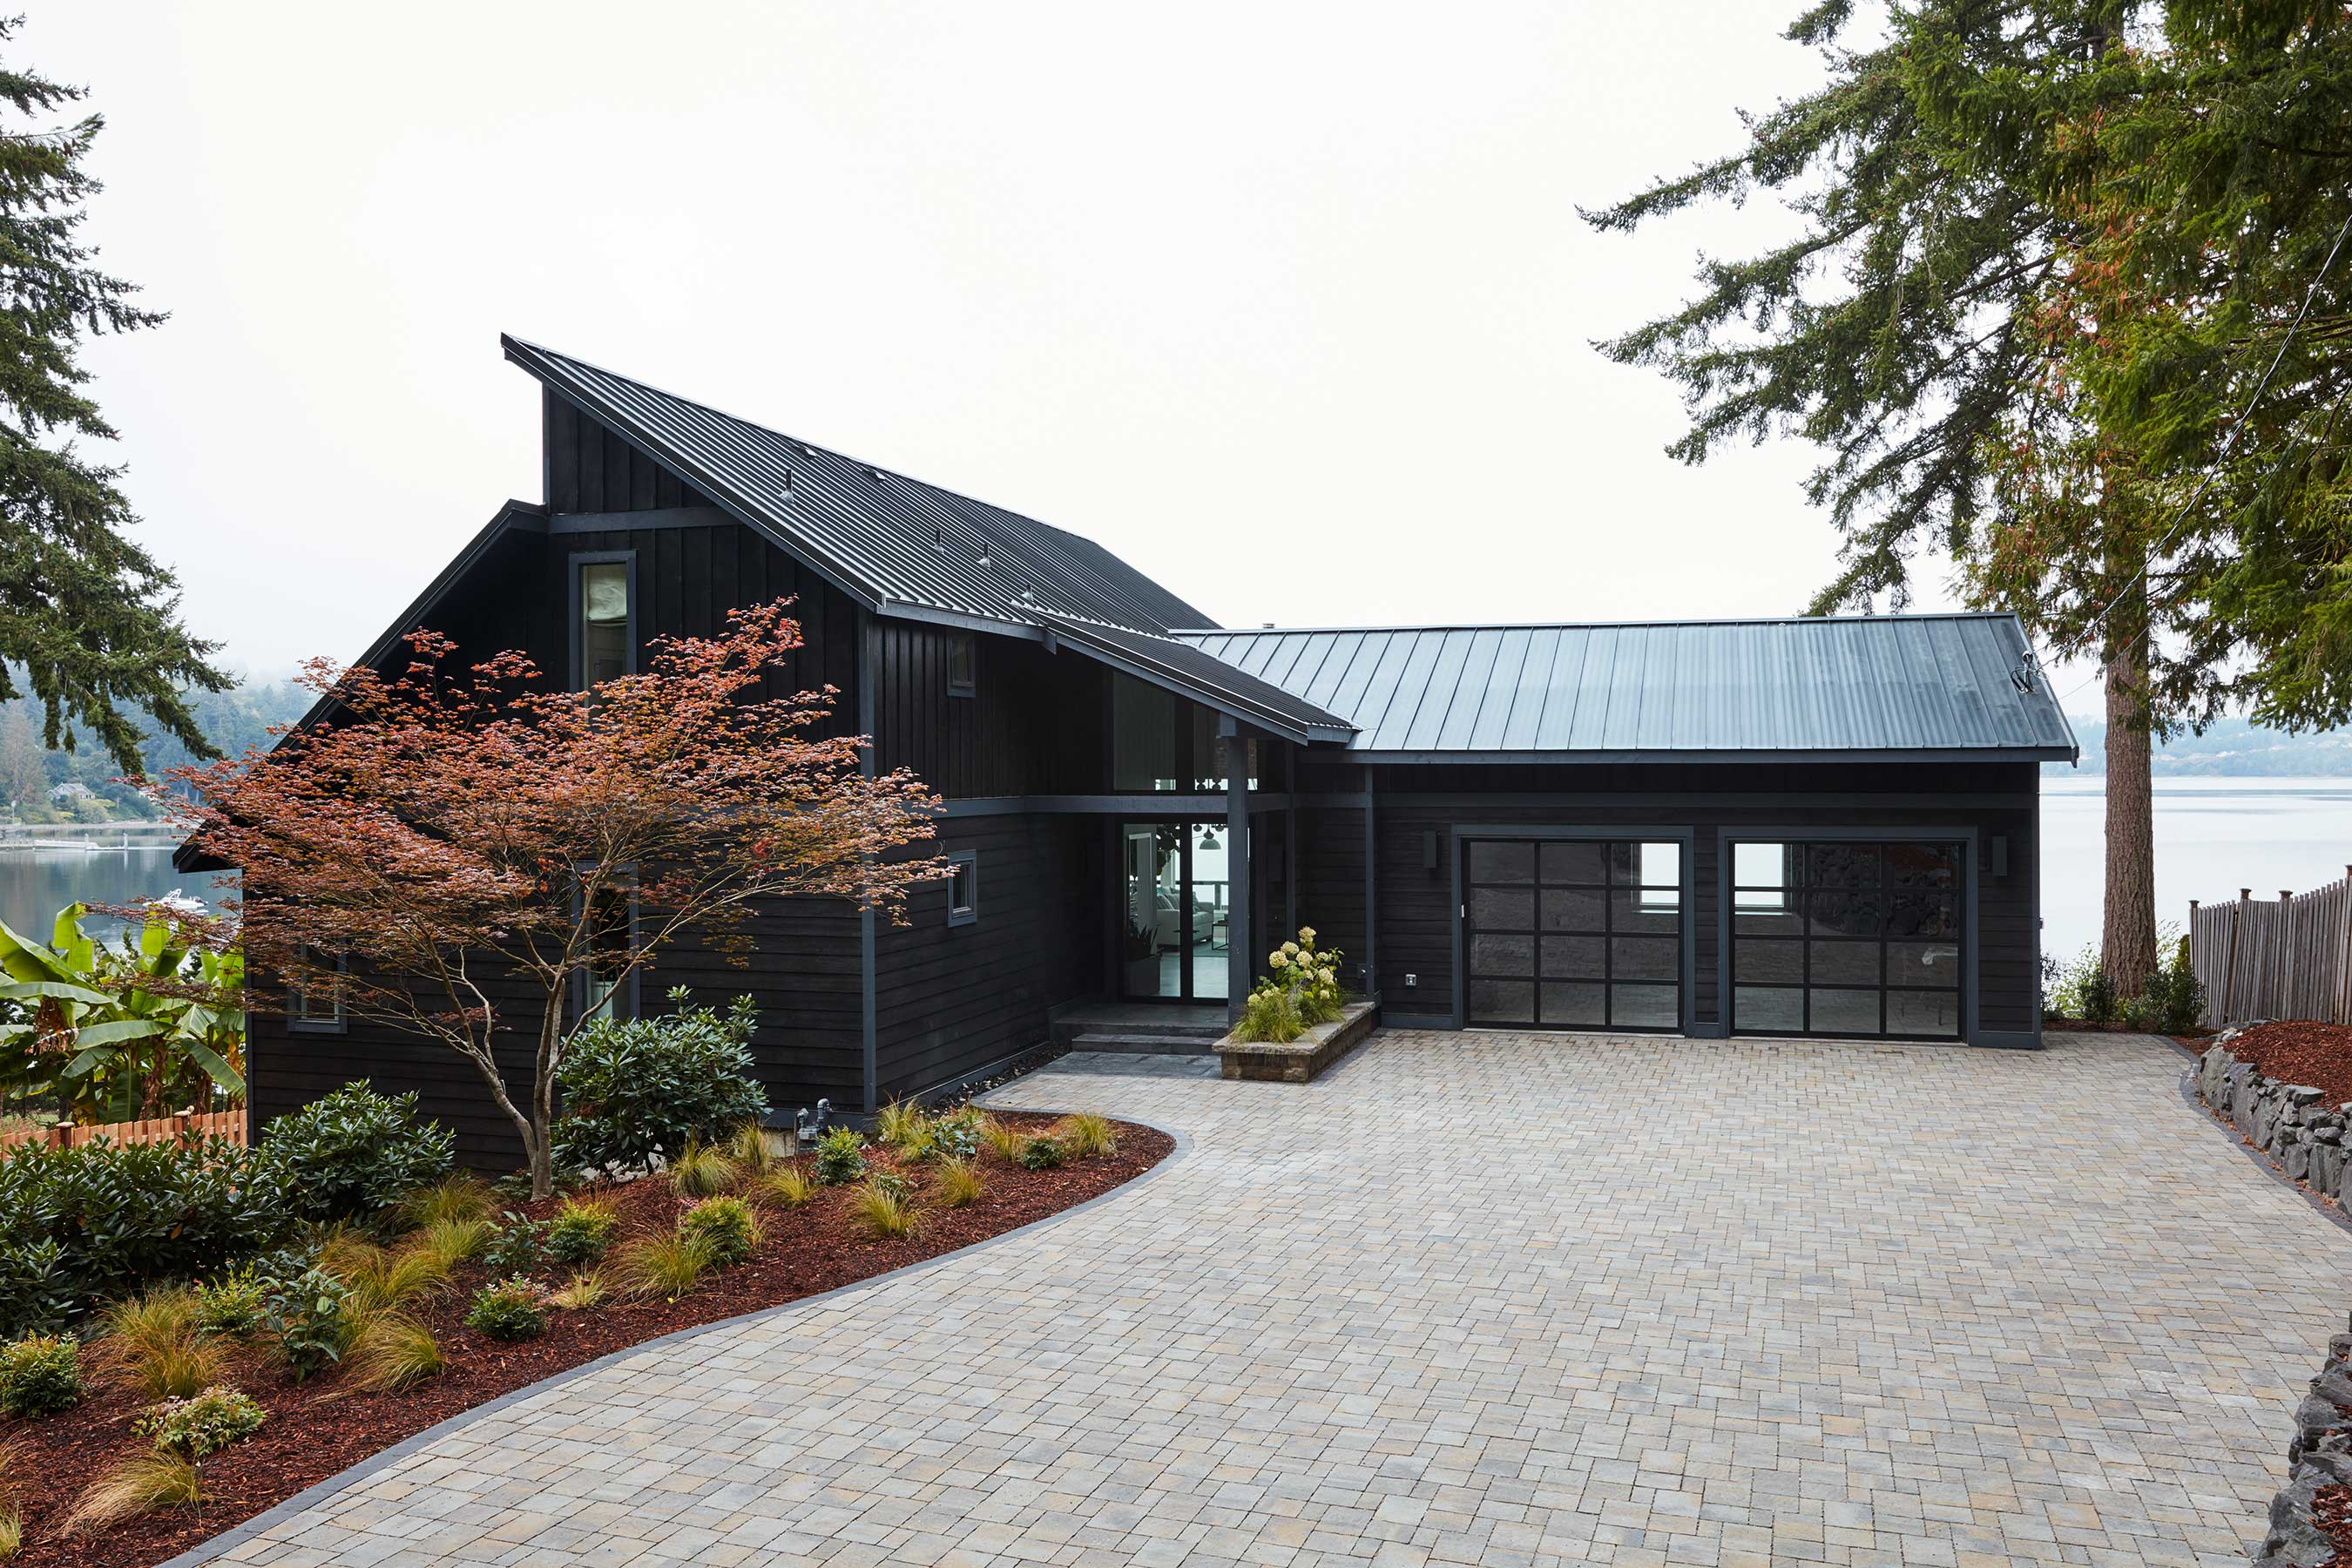 HGTV Dream Home 2018 is a modern and welcoming waterfront escape set in Gig Harbor, Washington, one of the most charming towns in the Pacific Northwest. The completely renovated and fully furnished 3,500-square-foot home will be given away to one lucky winner, along with a new Honda Accord and $250,000 in cash provided by national mortgage lender Quicken Loans.